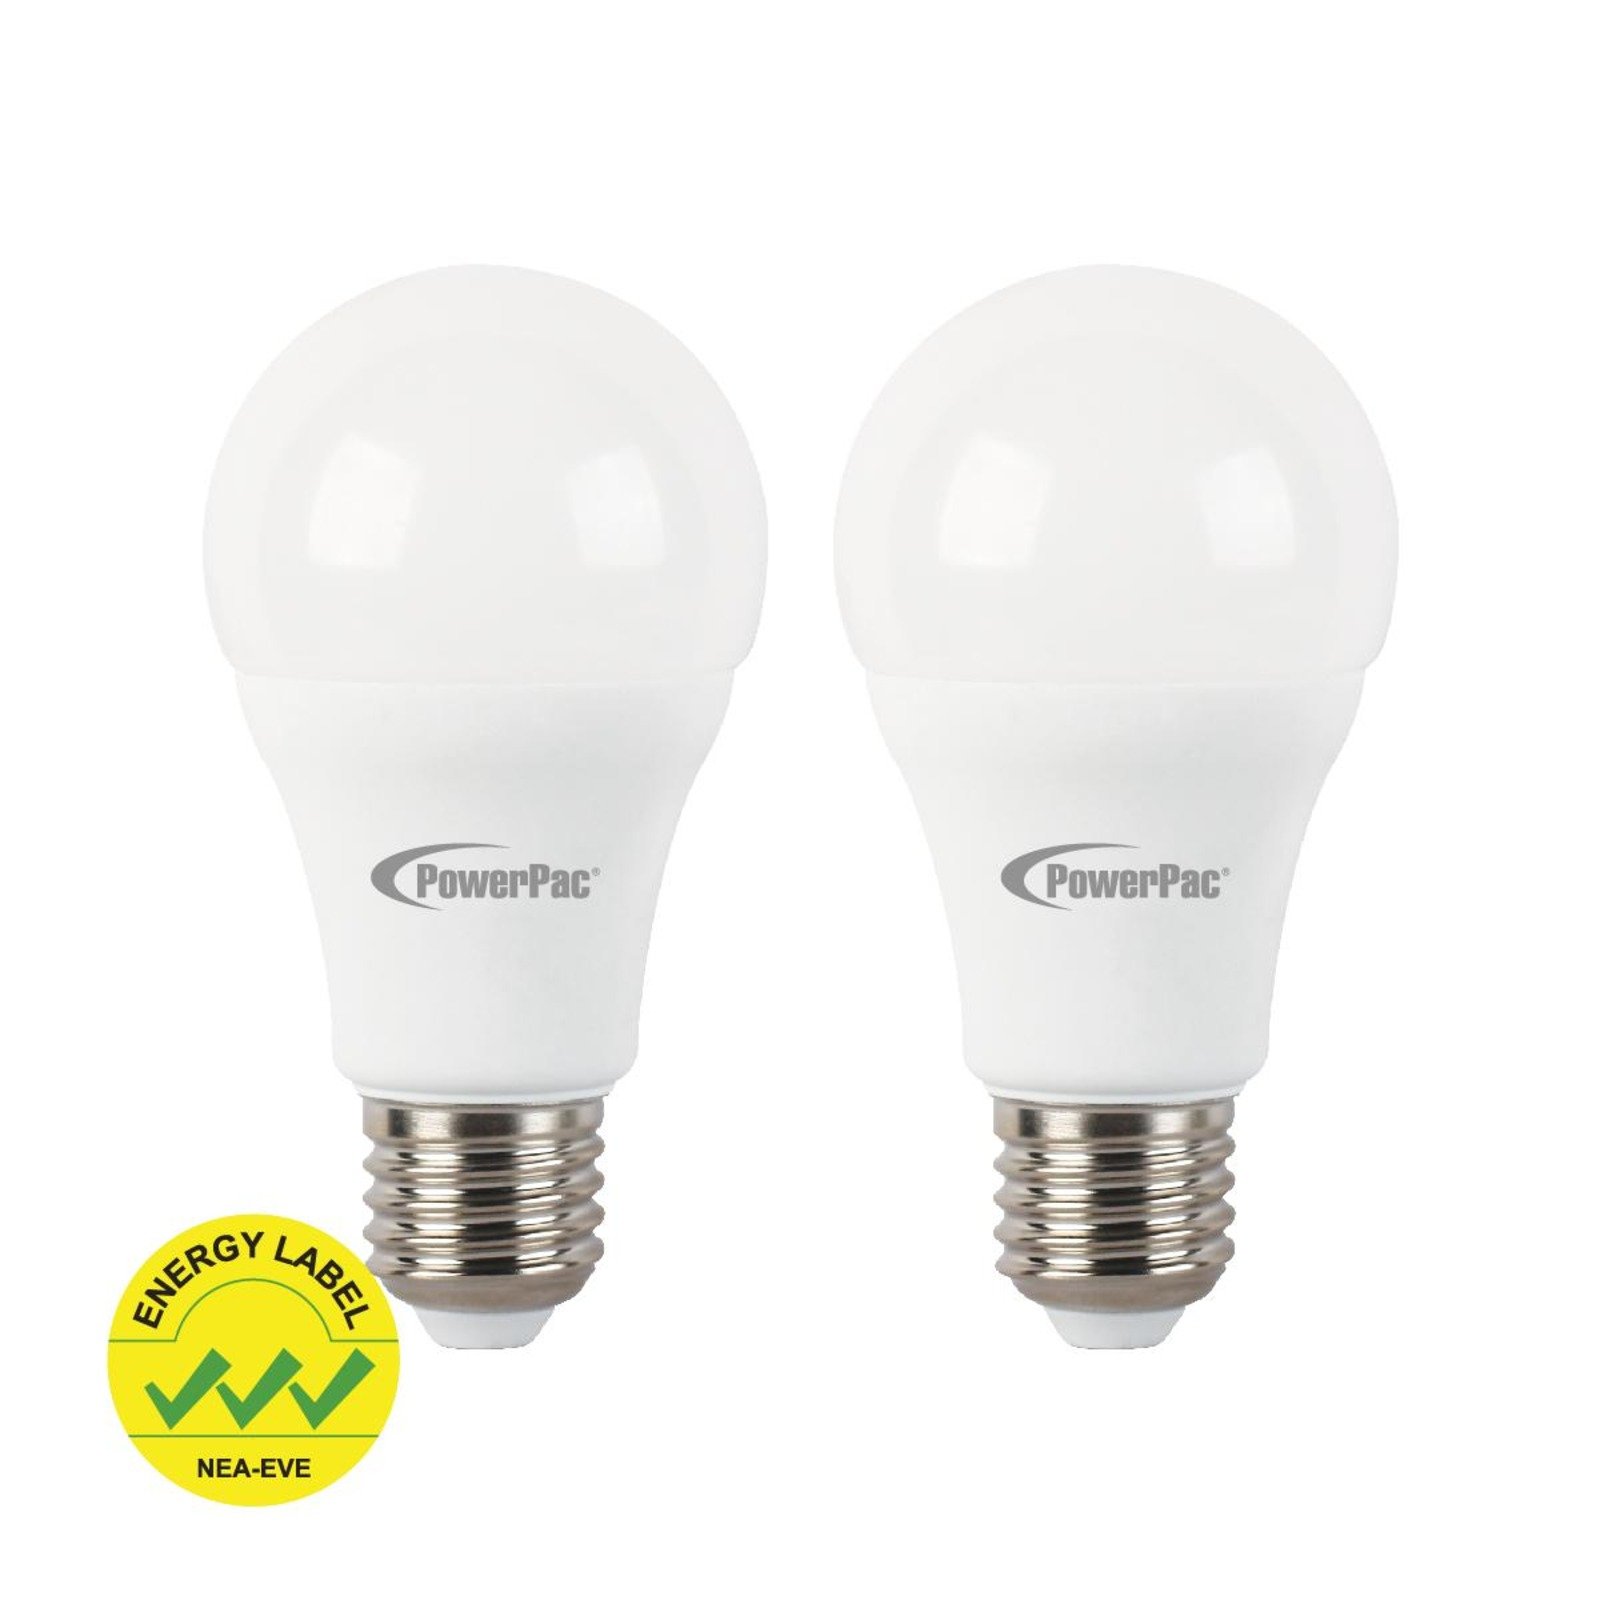 PowerPac 2 Pieces x 7.5W E27 Vertex LED Bulb Daylight PP6553